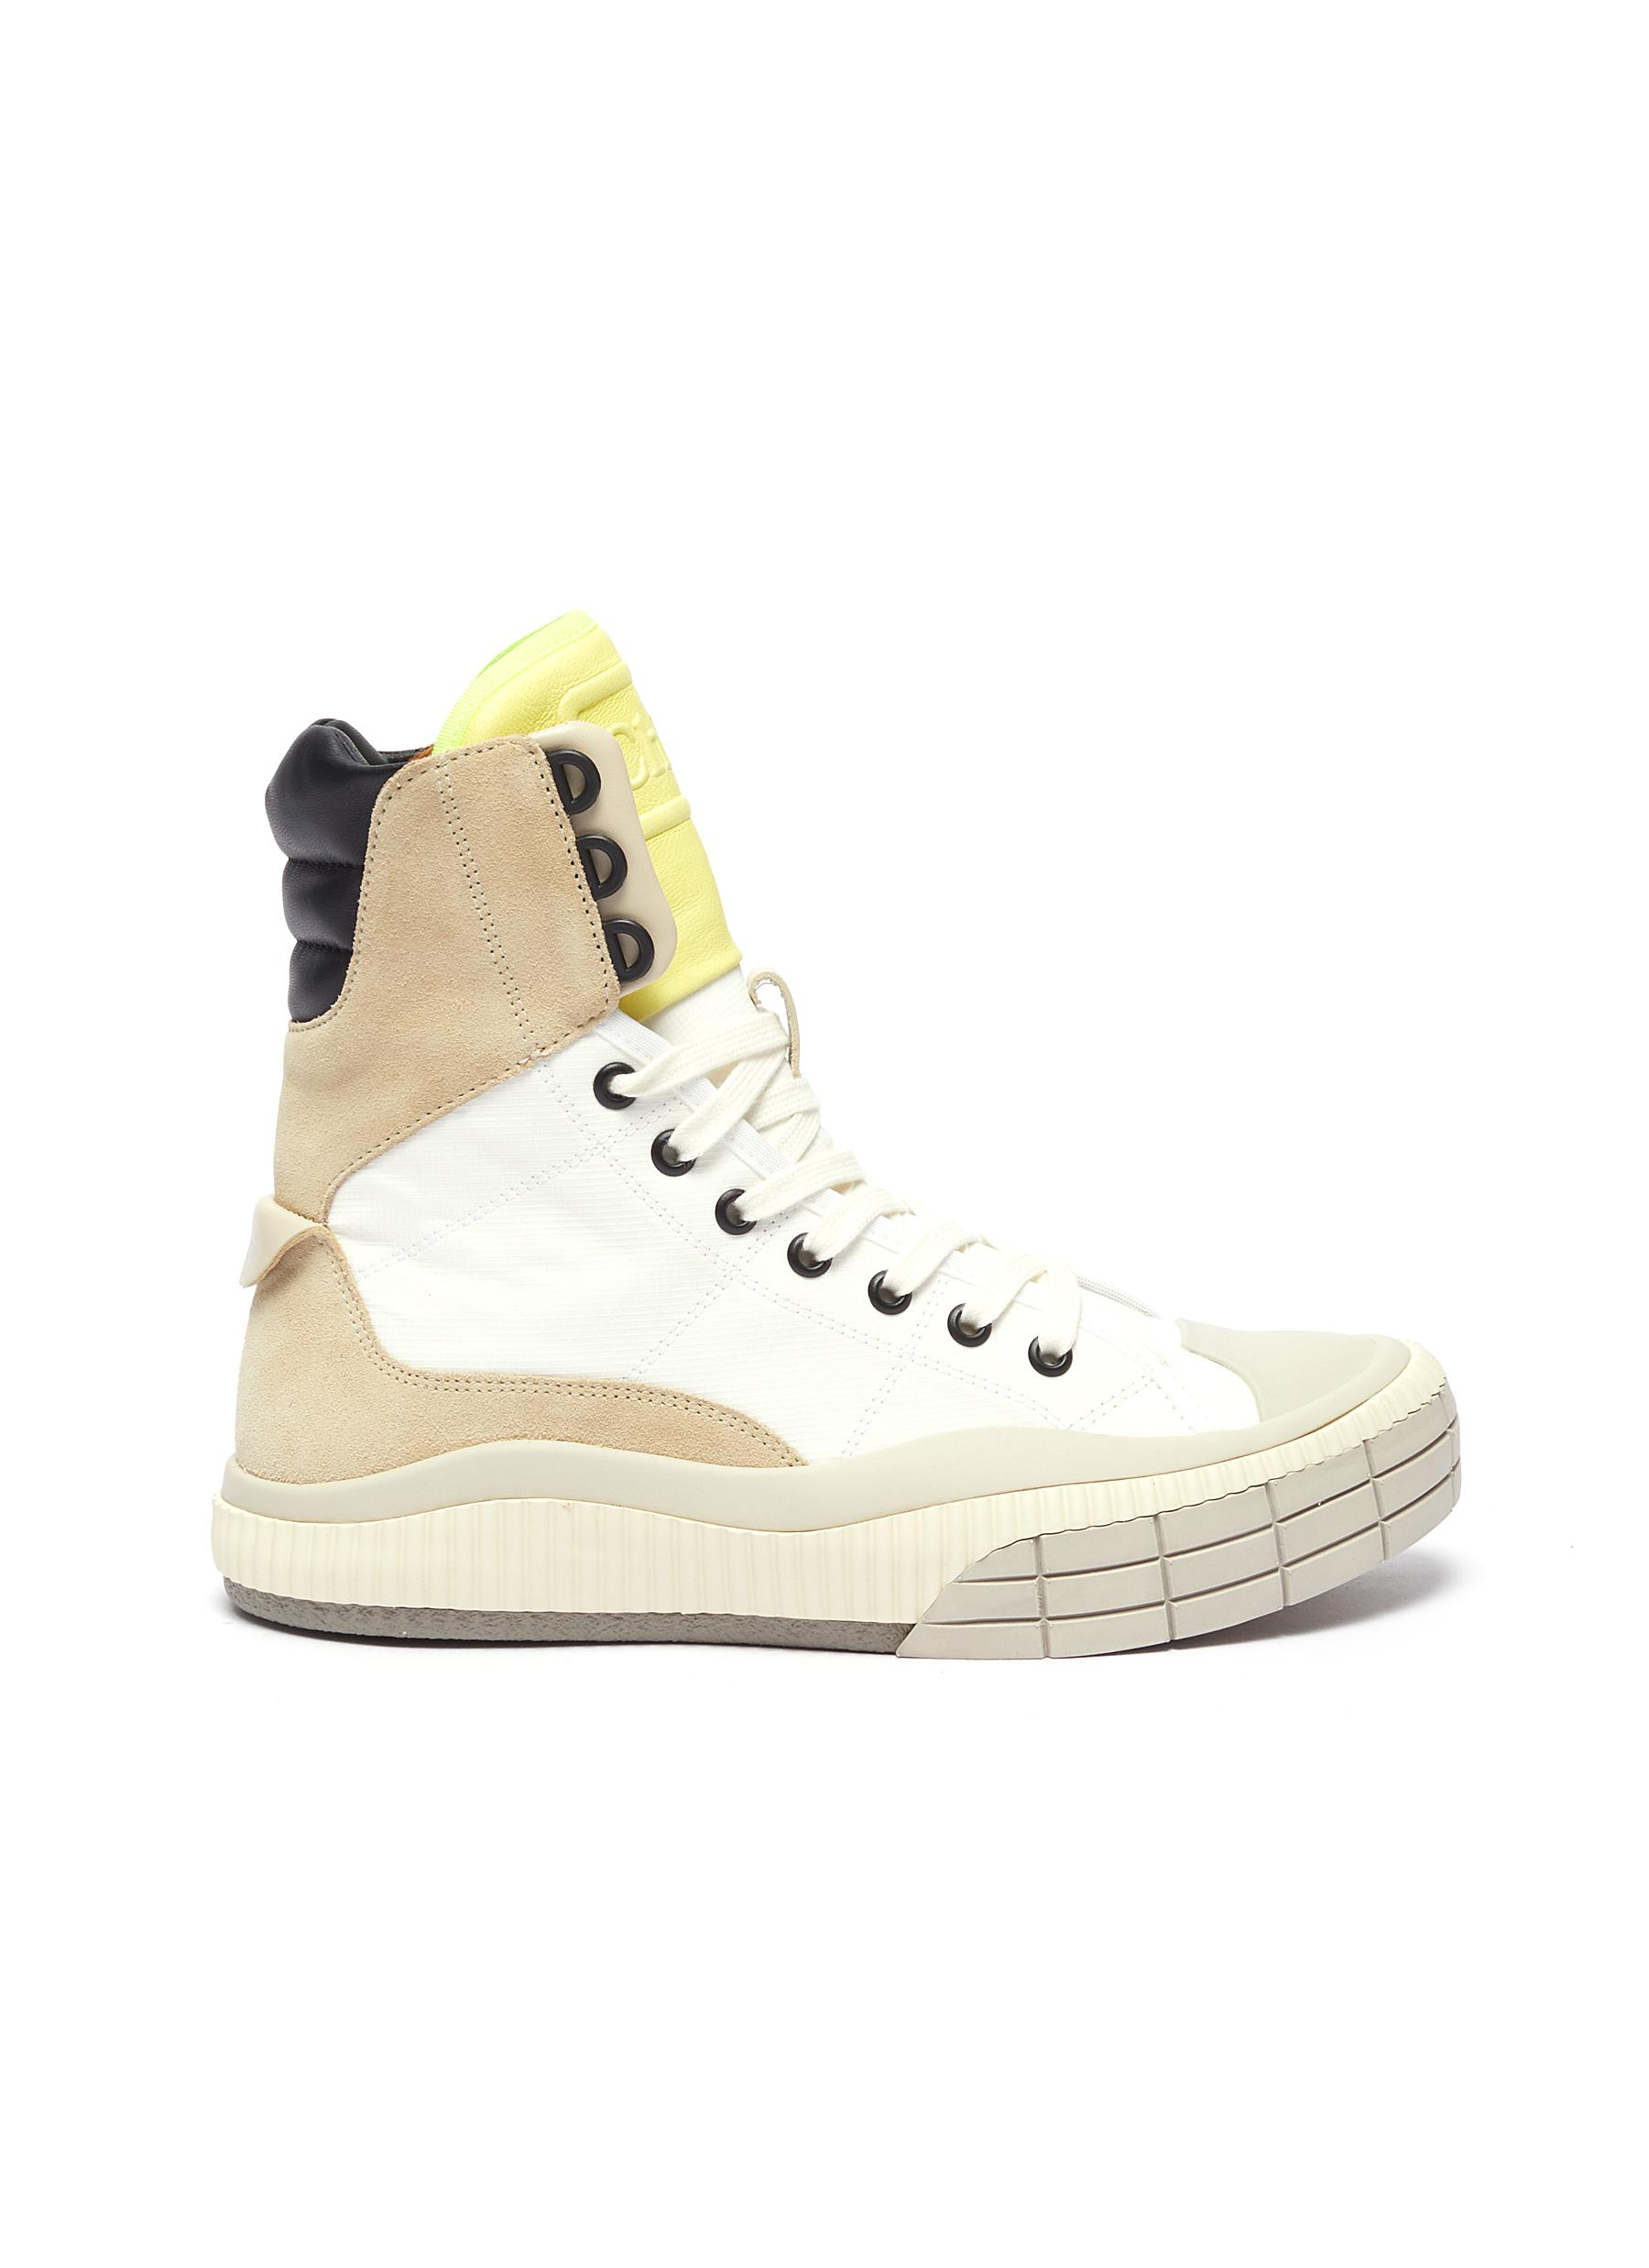 Chloé Sneakers Clint contrast tongue high top sneakers